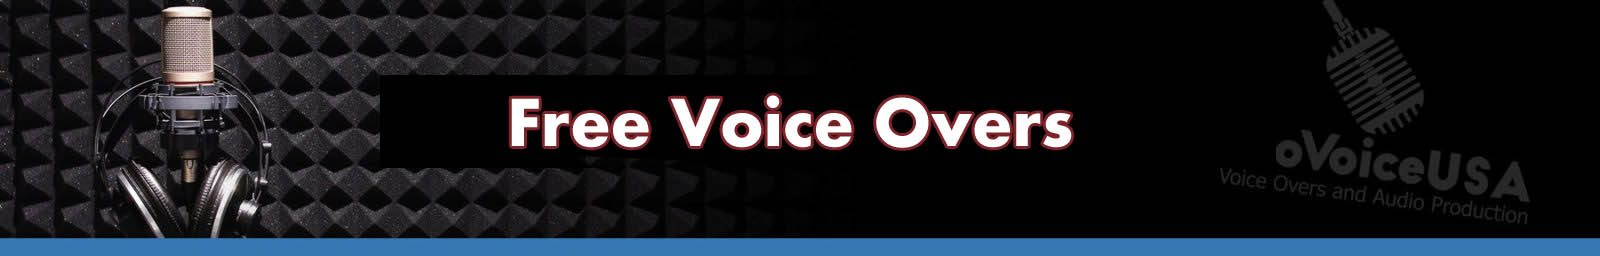 Free Voice Overs | American Voice Recording Service | ProVoice USA